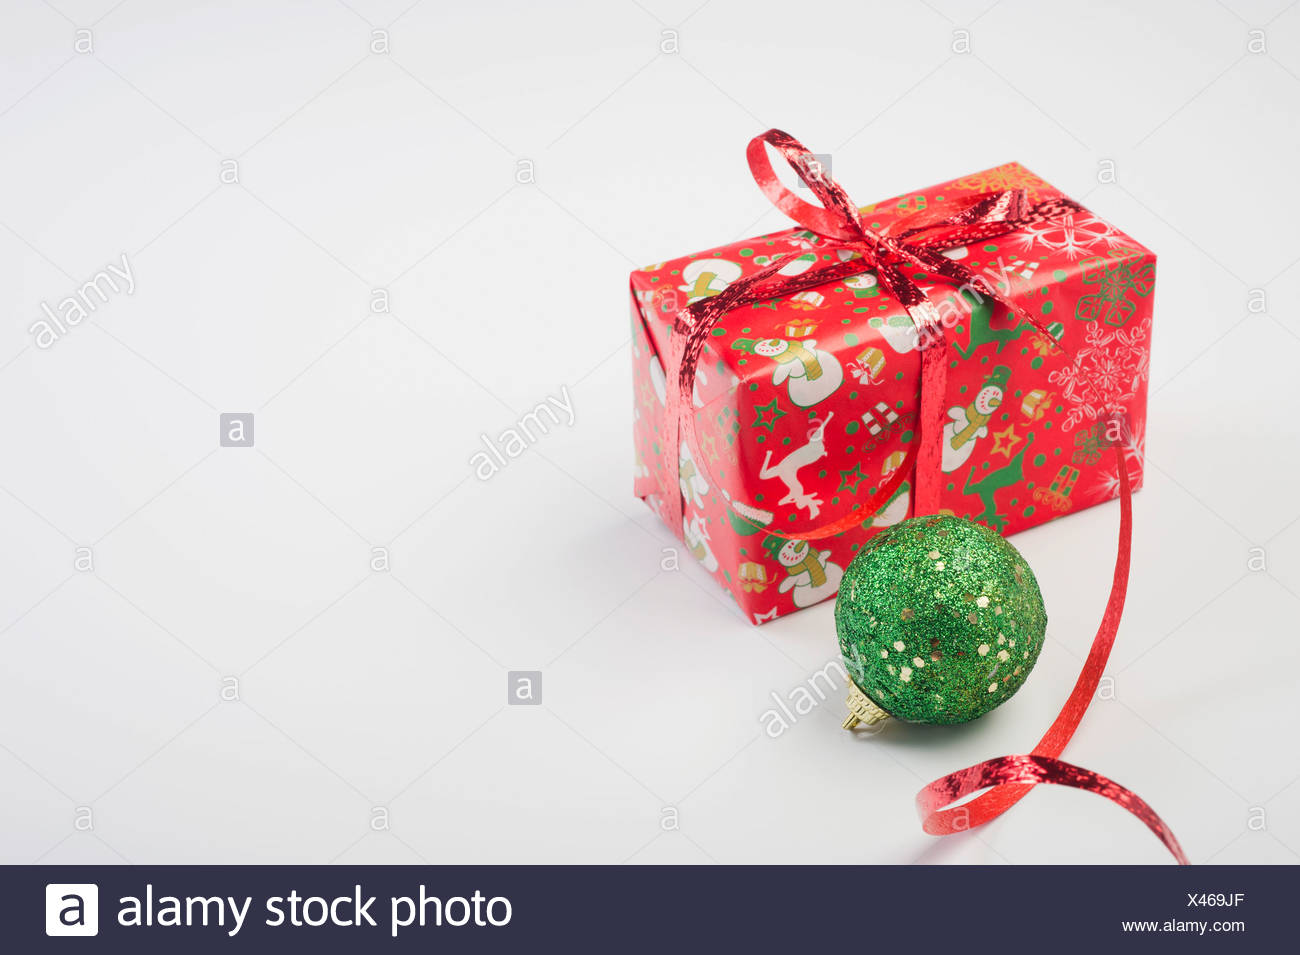 Christmas ornament and festively wrapped present - Stock Image